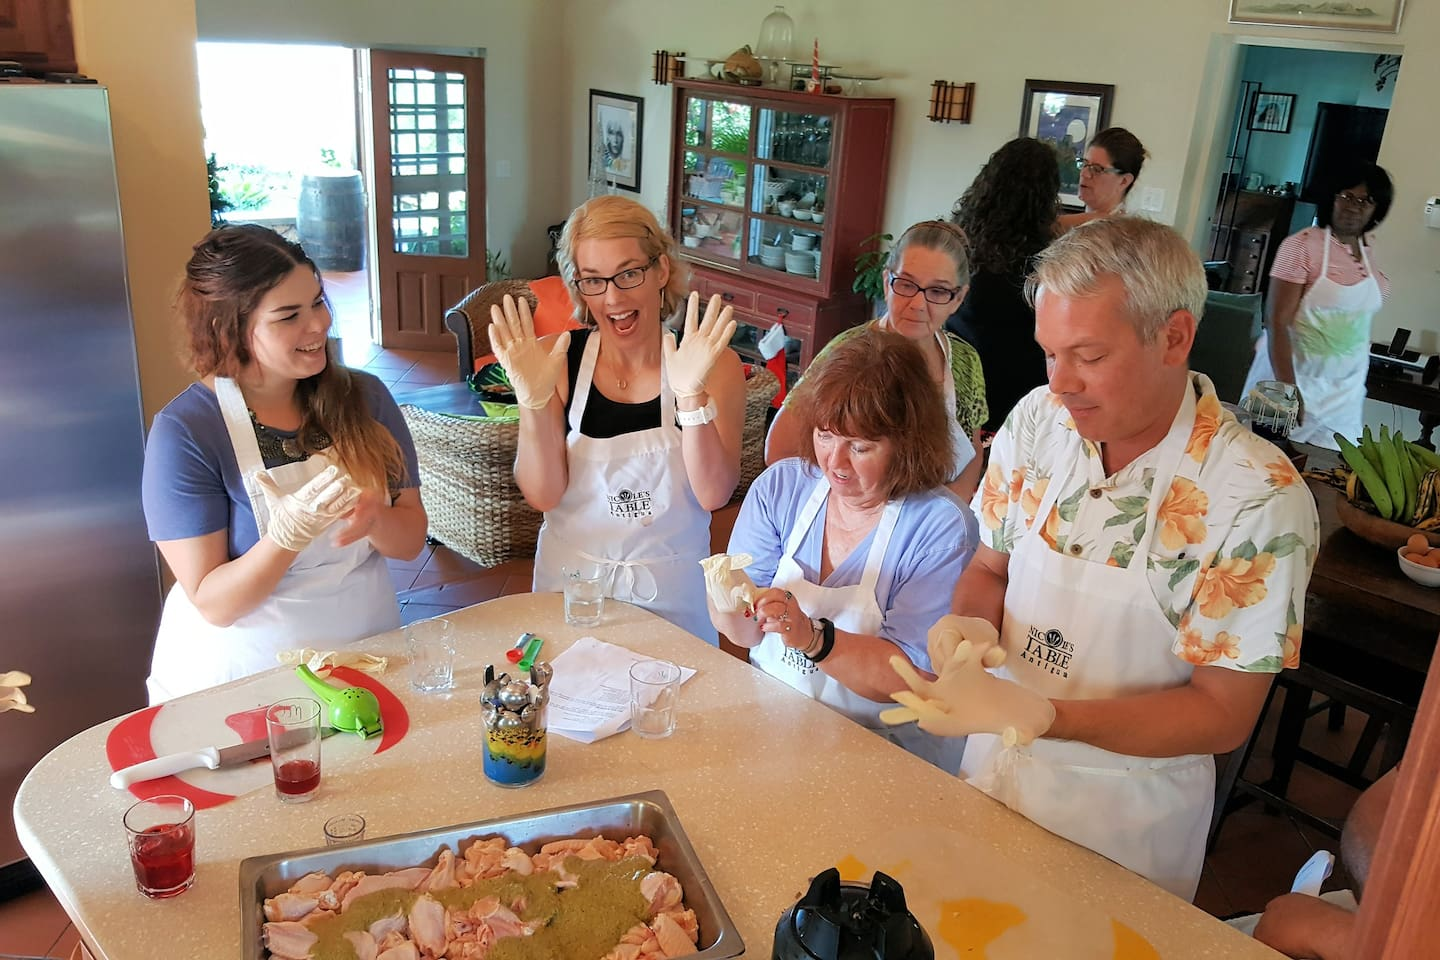 If you want to take a class or three, you will find them to be full of laughter, talk about local flavors and customs, history, and Caribbean stories!